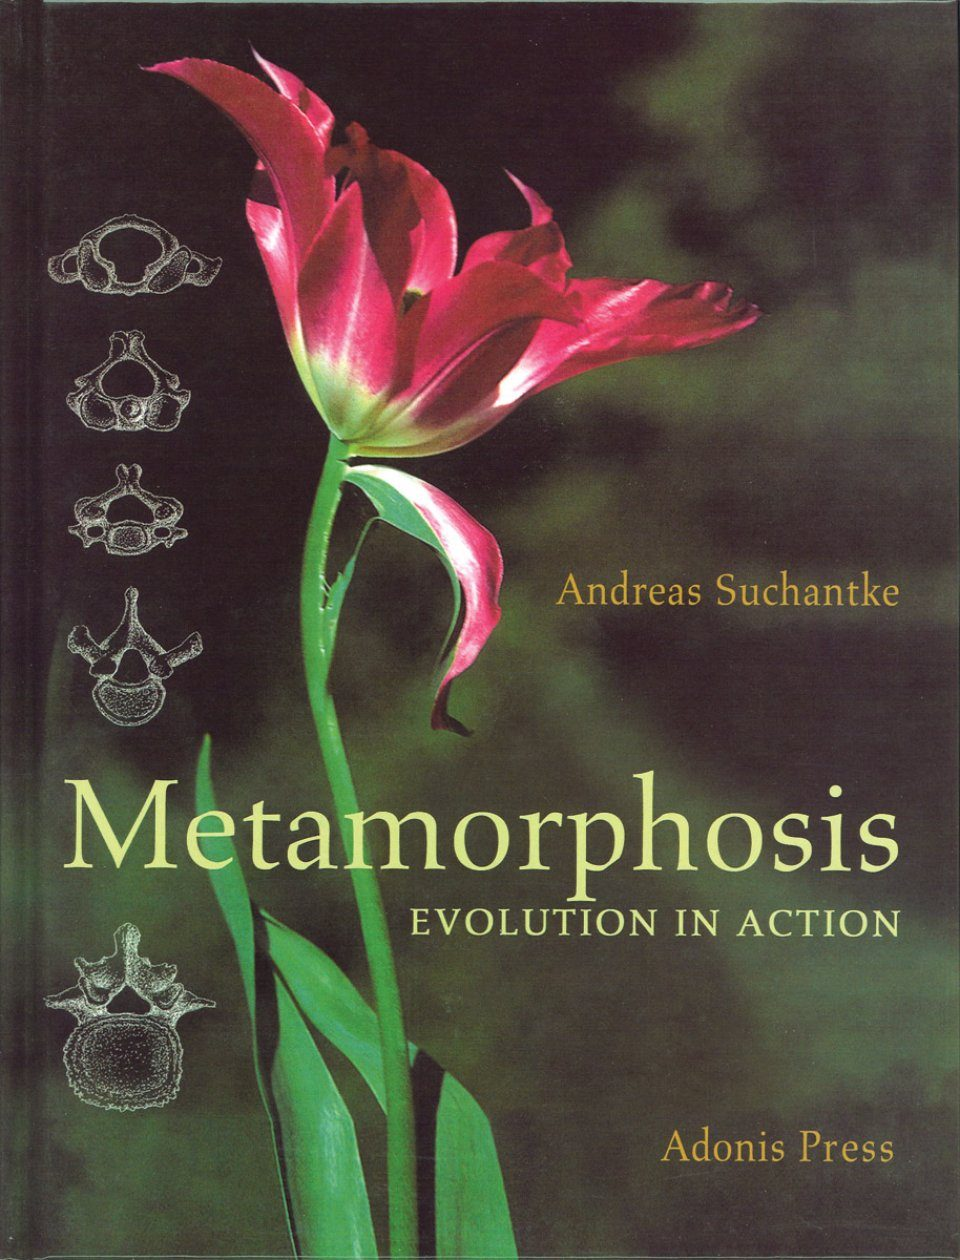 Metamorphosis: Evolution in Action